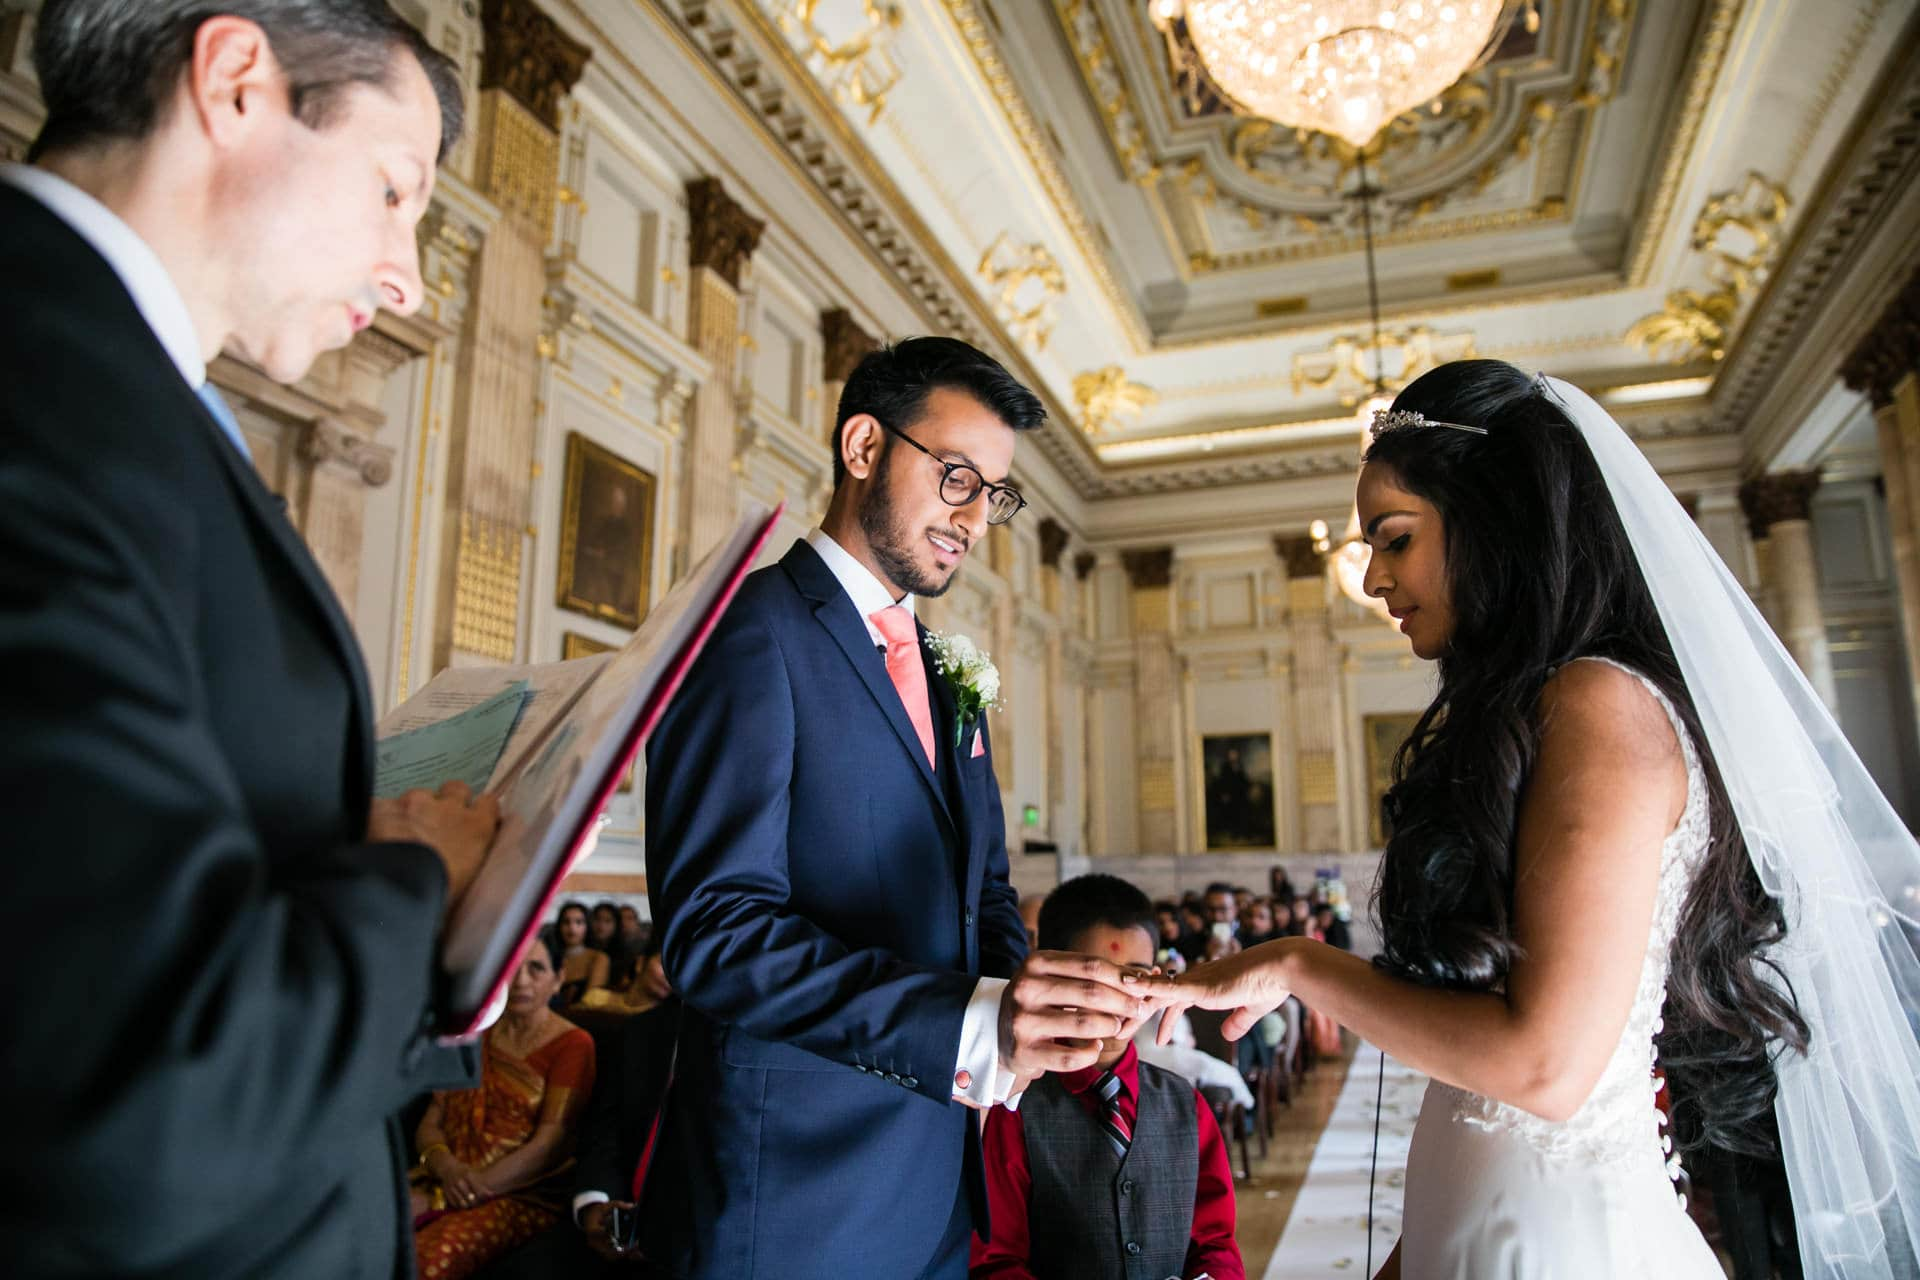 Civil wedding ceremony at One Great George Street , London